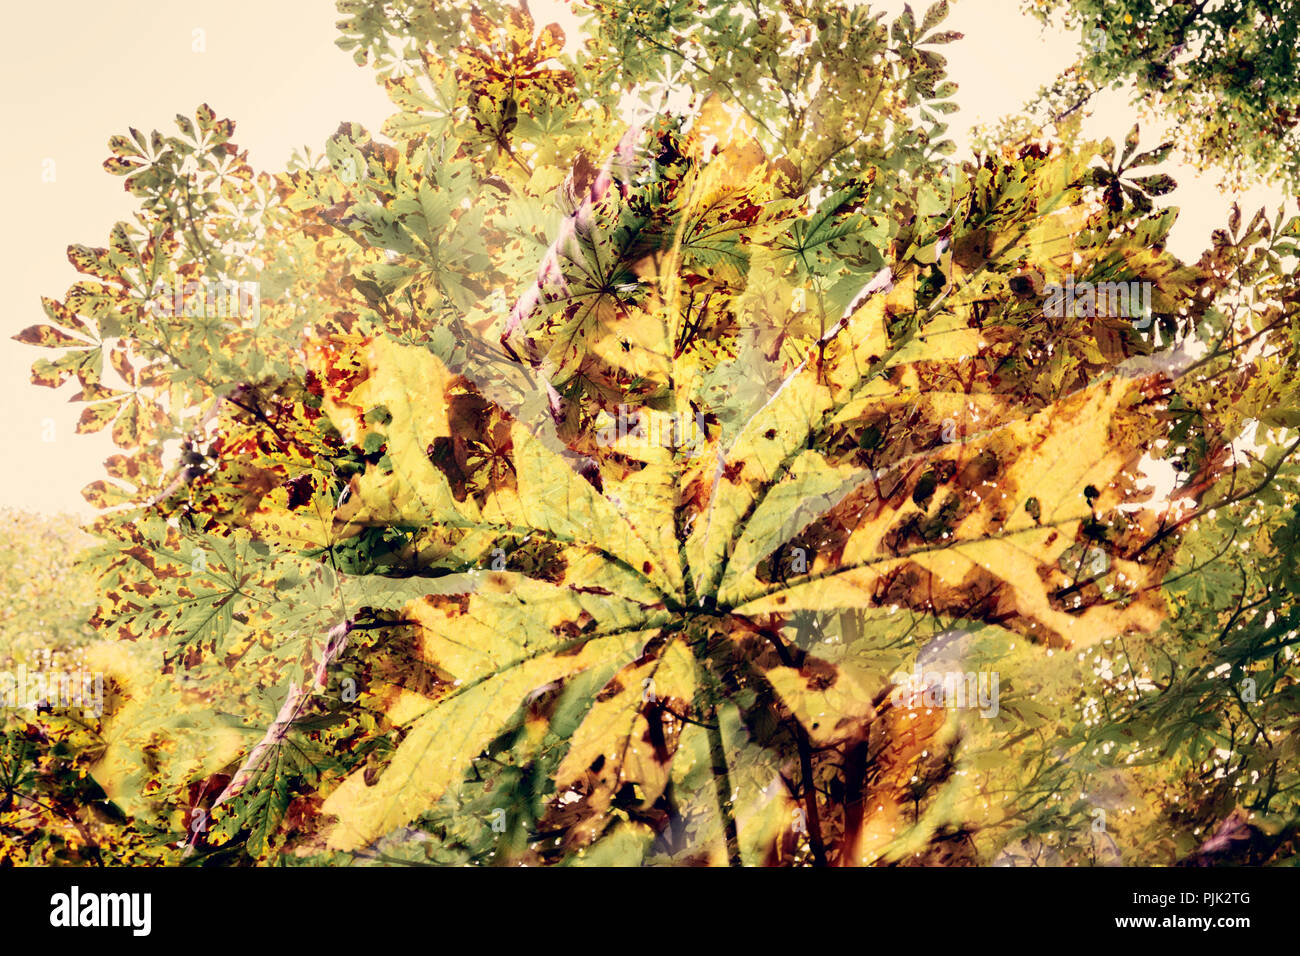 Chestnut tree artistical photographed with the help of double exposure, - Stock Image